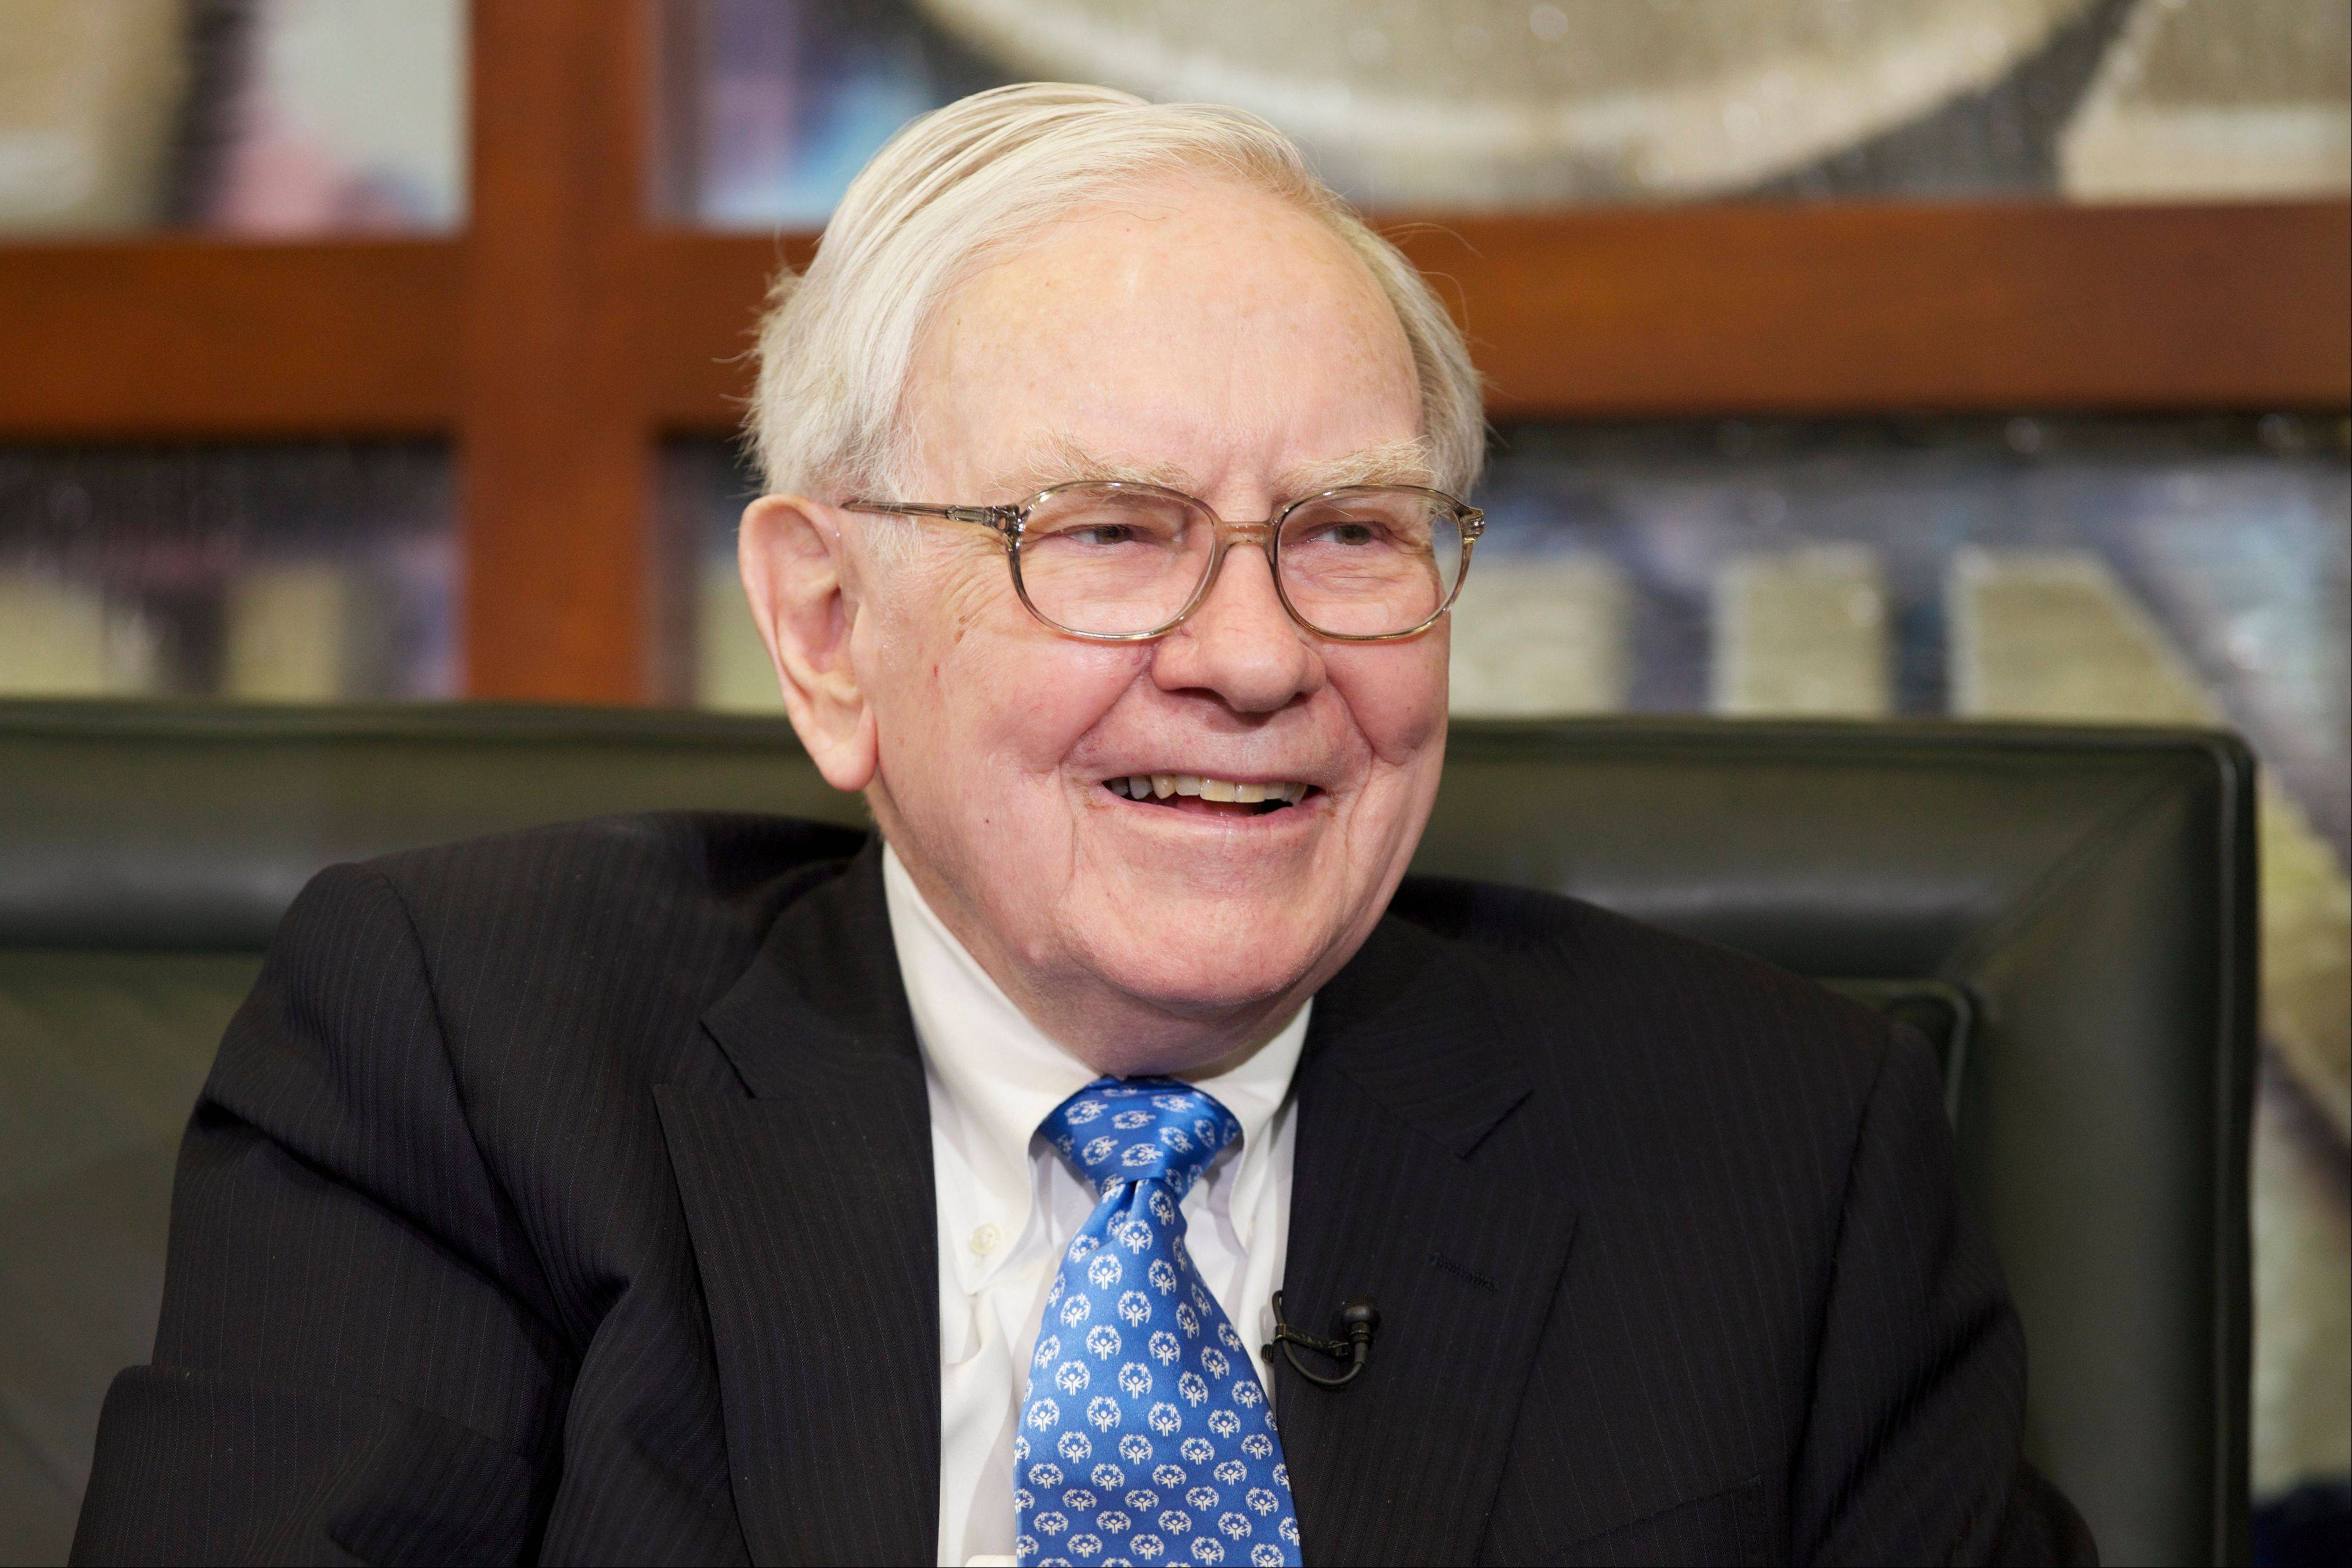 Associated Press/May 6, 2013 Warren Buffett smiles during an interview with Liz Claman of the Fox Business Network in Omaha, Neb. The Berkshire Hathaway company reported quarterly earnings on Friday.